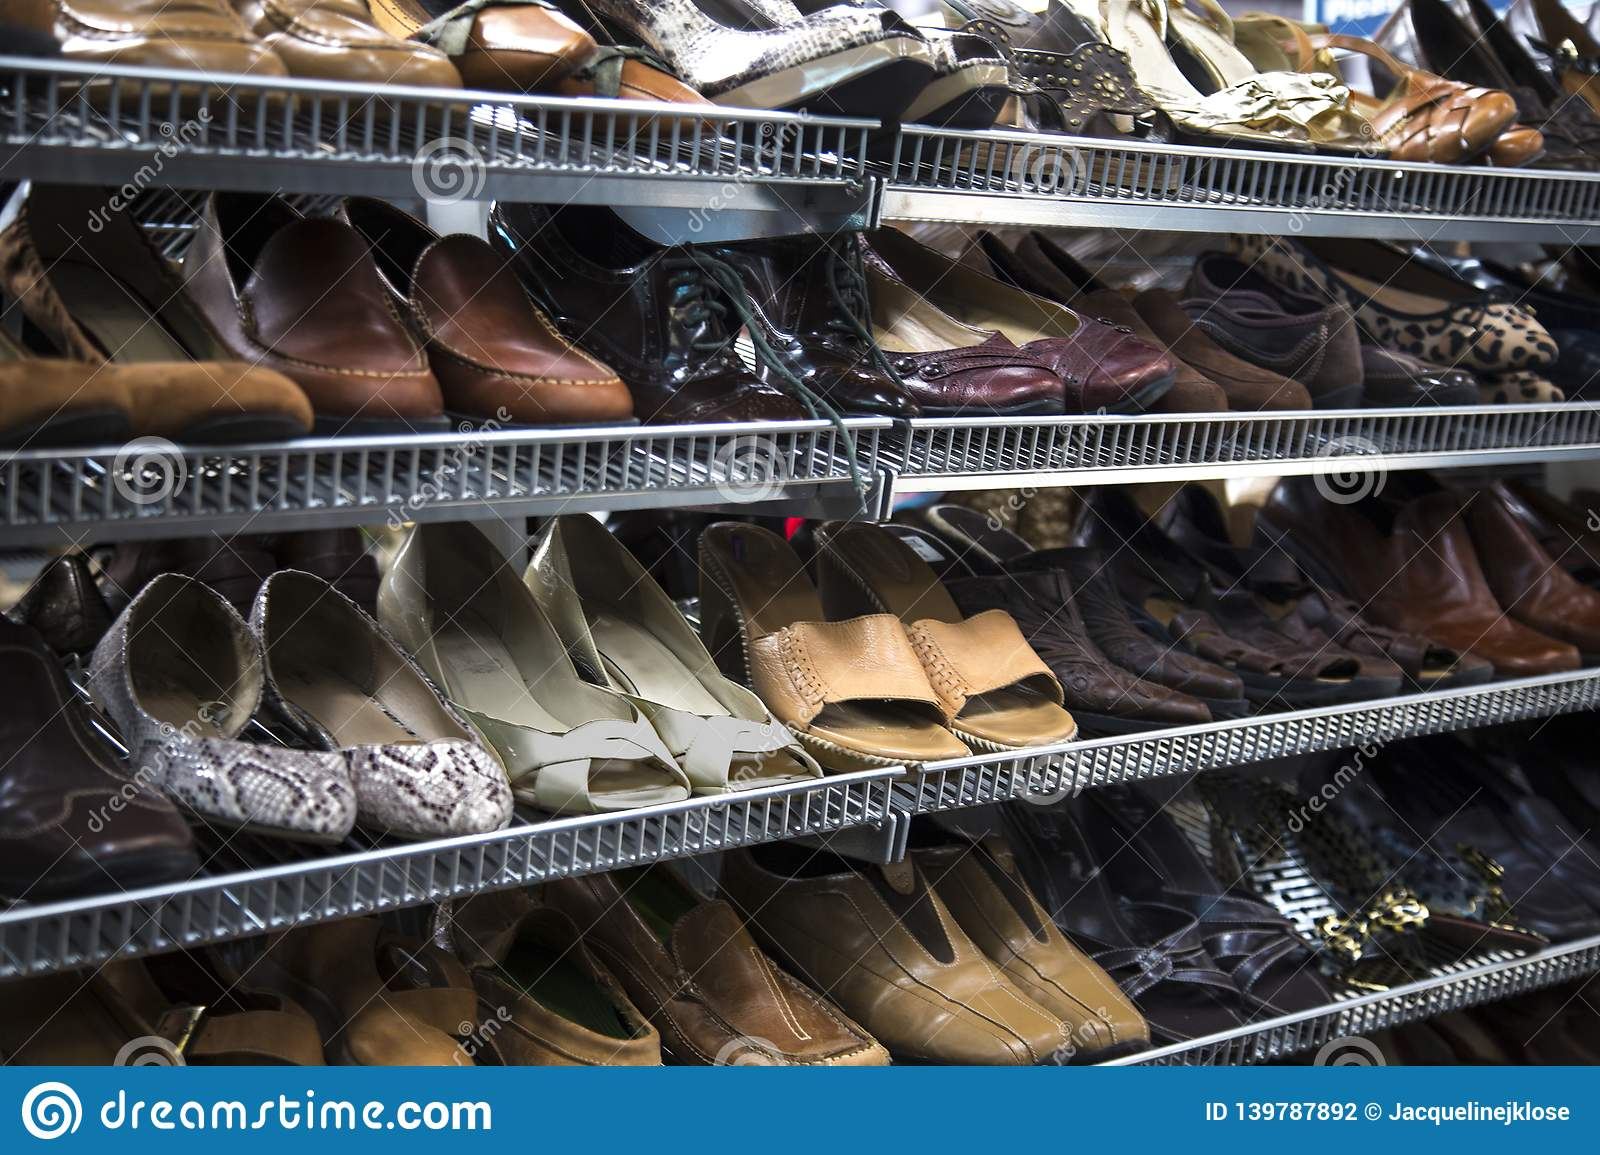 Women`s Neutral Colored Pumps, Shoes, Sandals, on Thrift Store Shelves